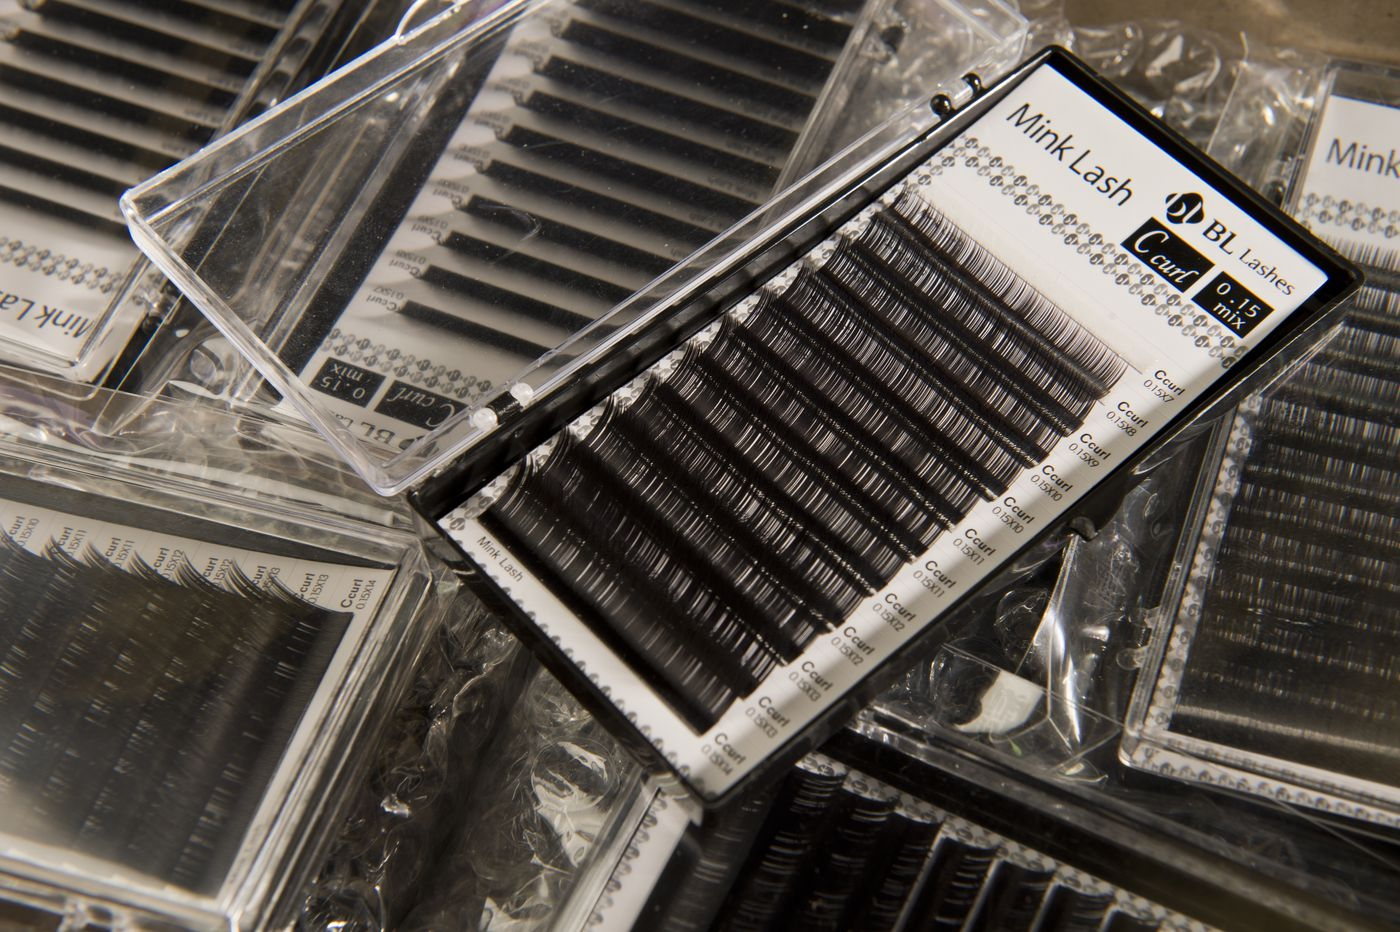 Supervisory wildlife inspector Chris Andrews said they've confiscated seven boxes – about 500 sets – of false eyelashes made from mink. Importers did not have the proper license to import the product from China. (Marc Lester/ ADN)